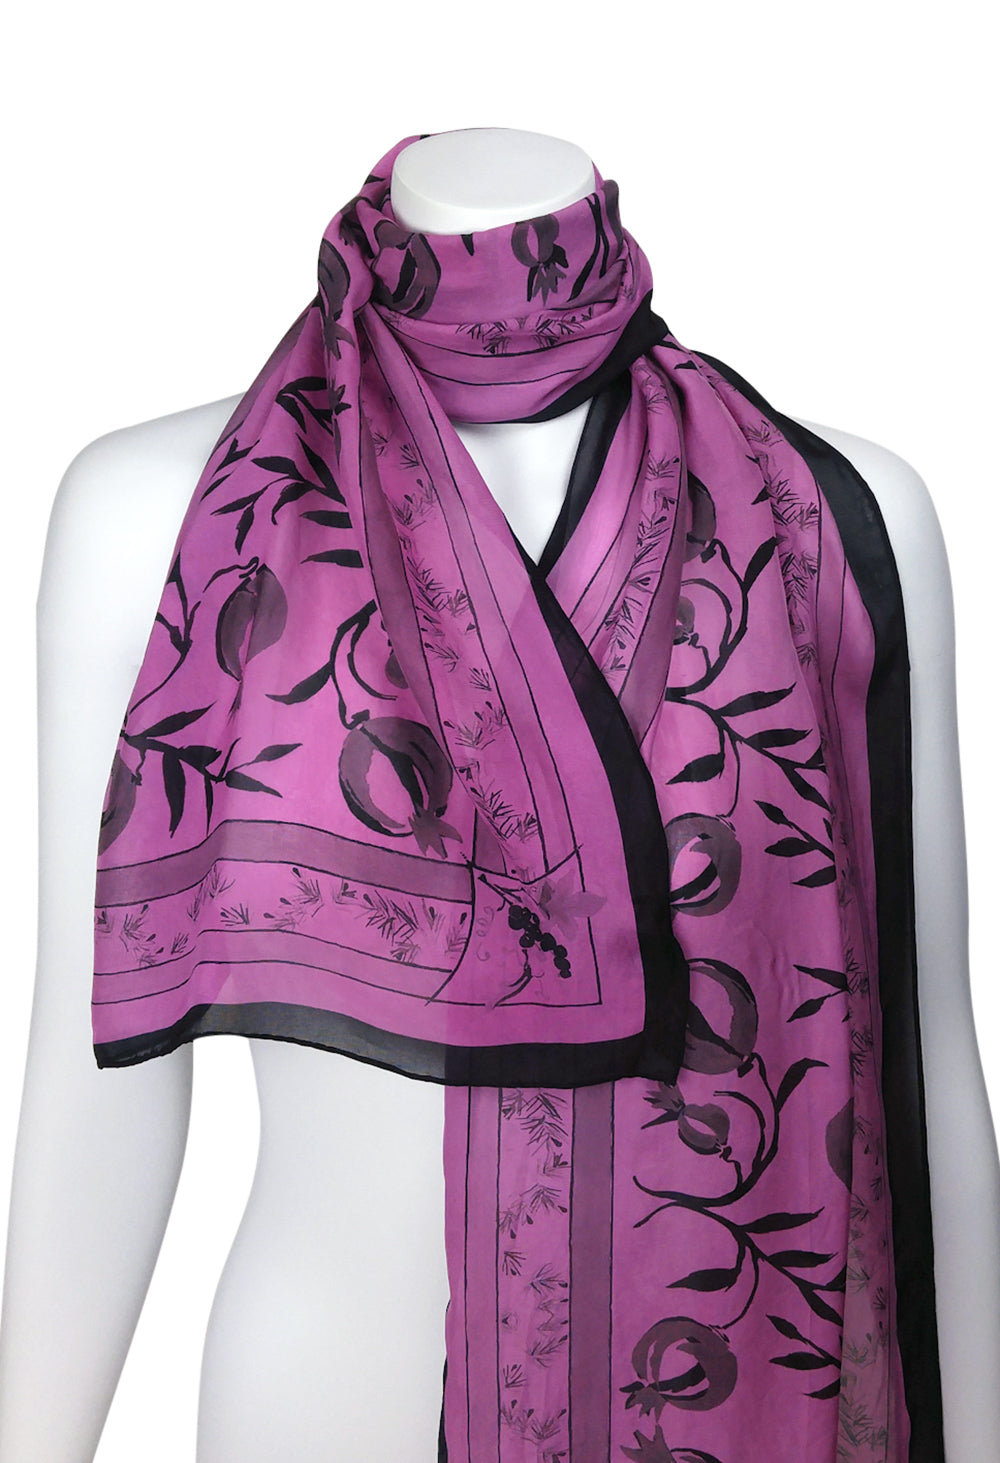 4. Three Gifts Pomegranate Scarf LONG Chiffon